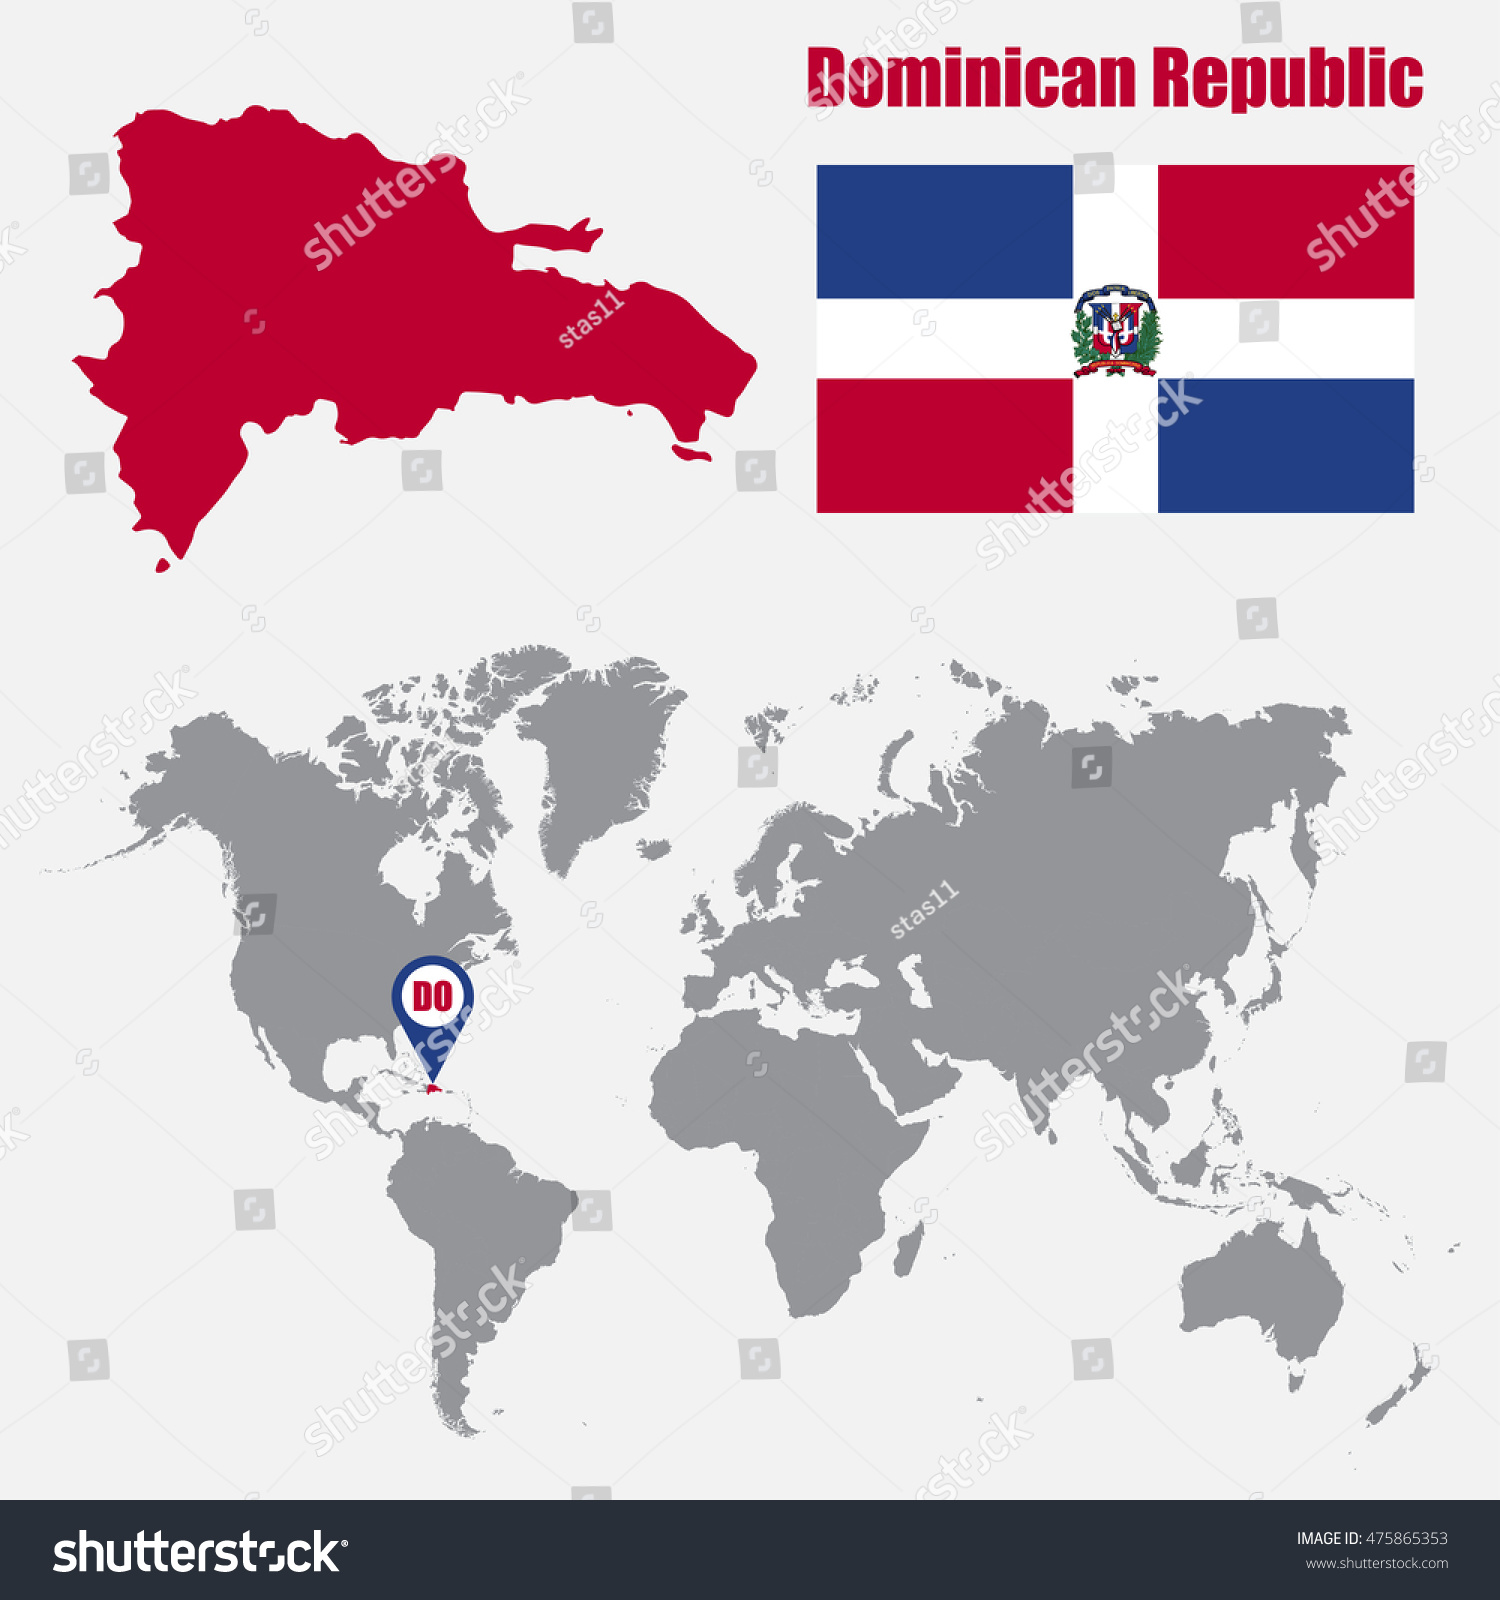 Dominican republic map on world map stock vector hd royalty free dominican republic map on a world map with flag and map pointer vector illustration gumiabroncs Images